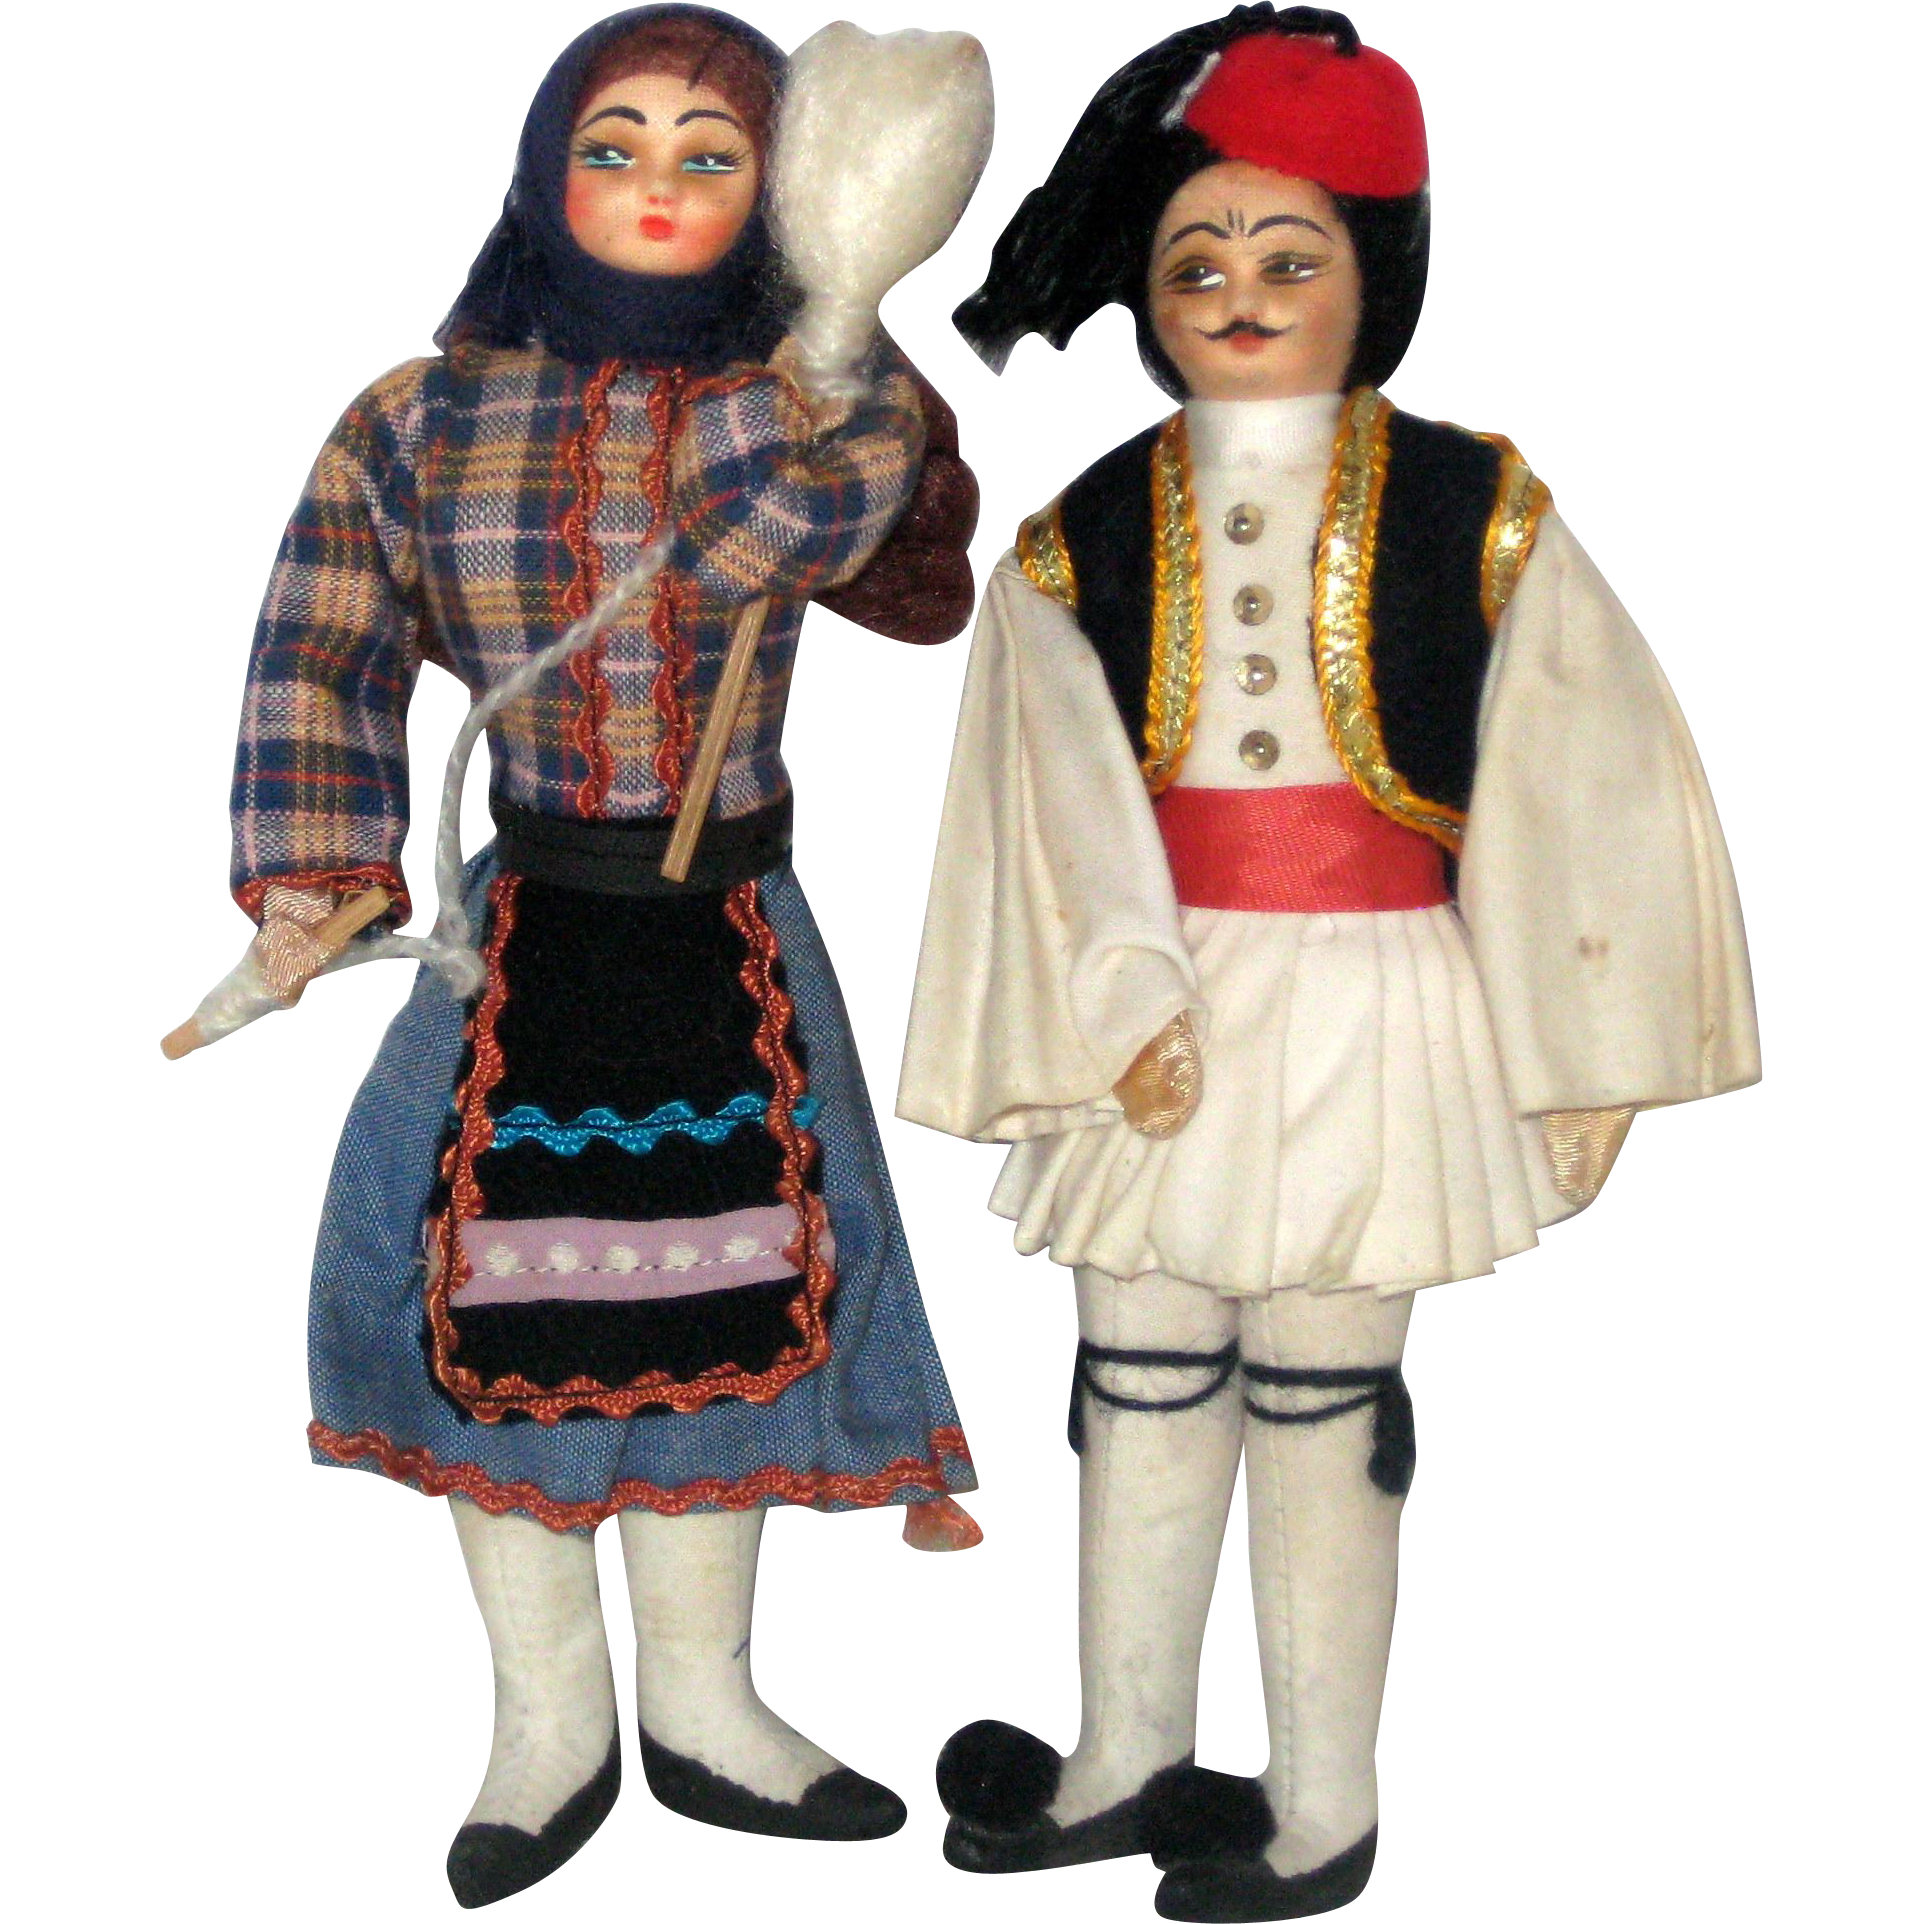 "Pair of 7 1/2"" Dolls from Greece - Folk Dress and Hand Painted Faces"